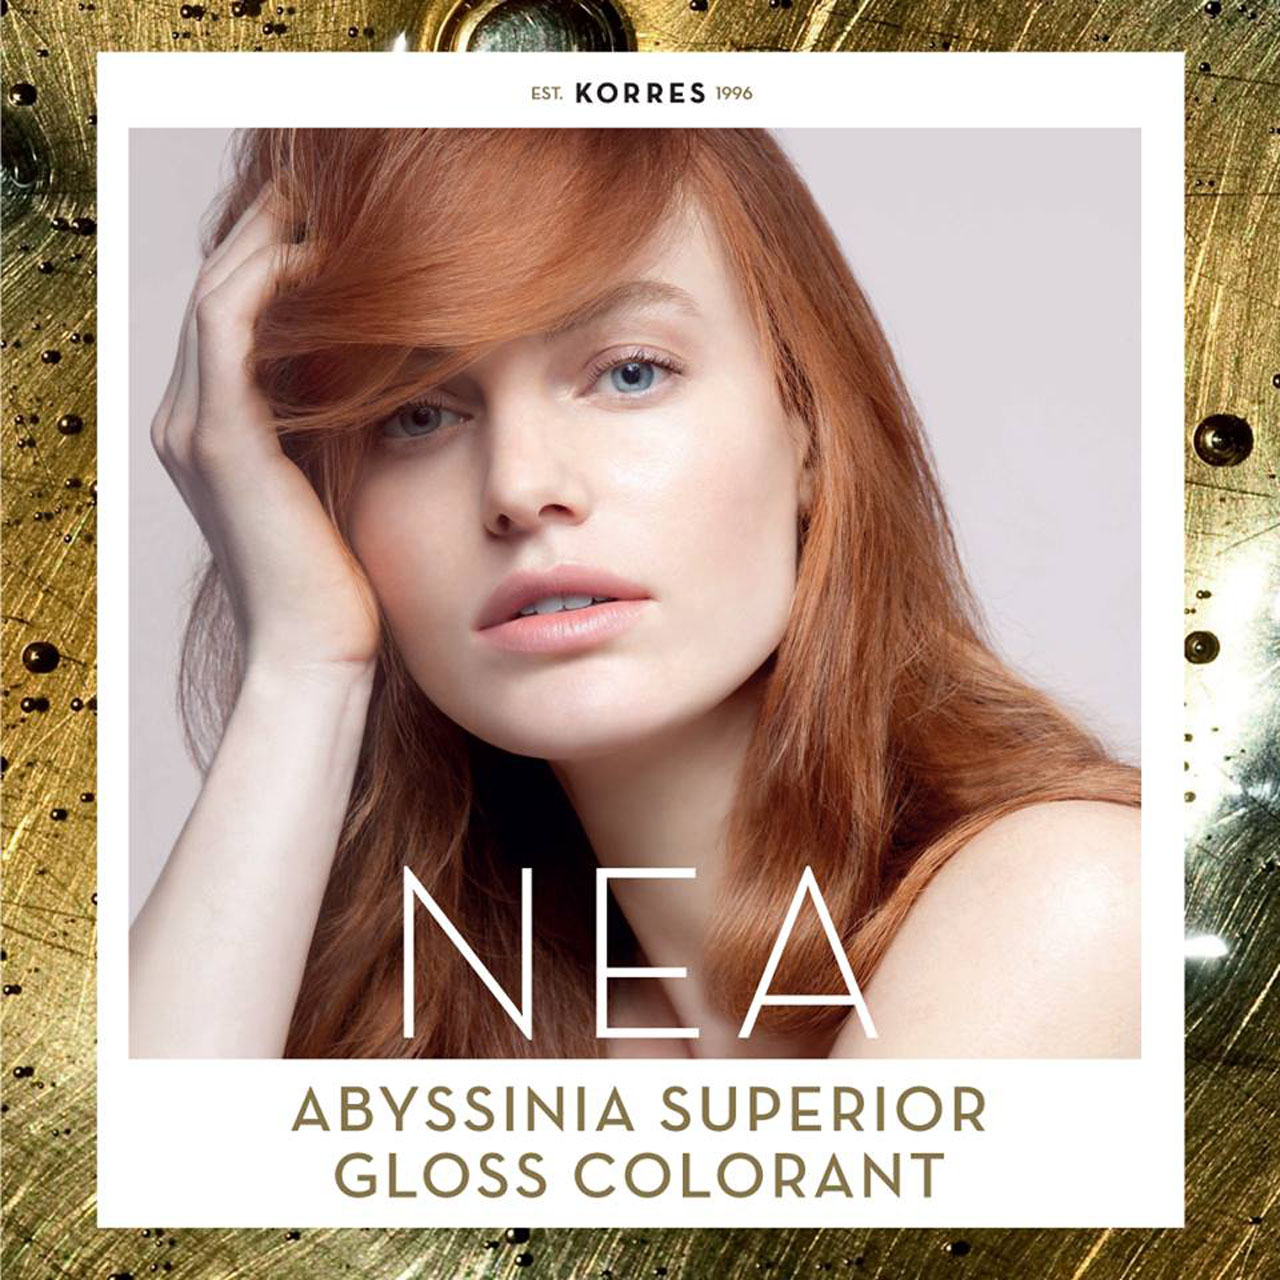 Georgie Wass is the face (and the superial color!) of Korres.